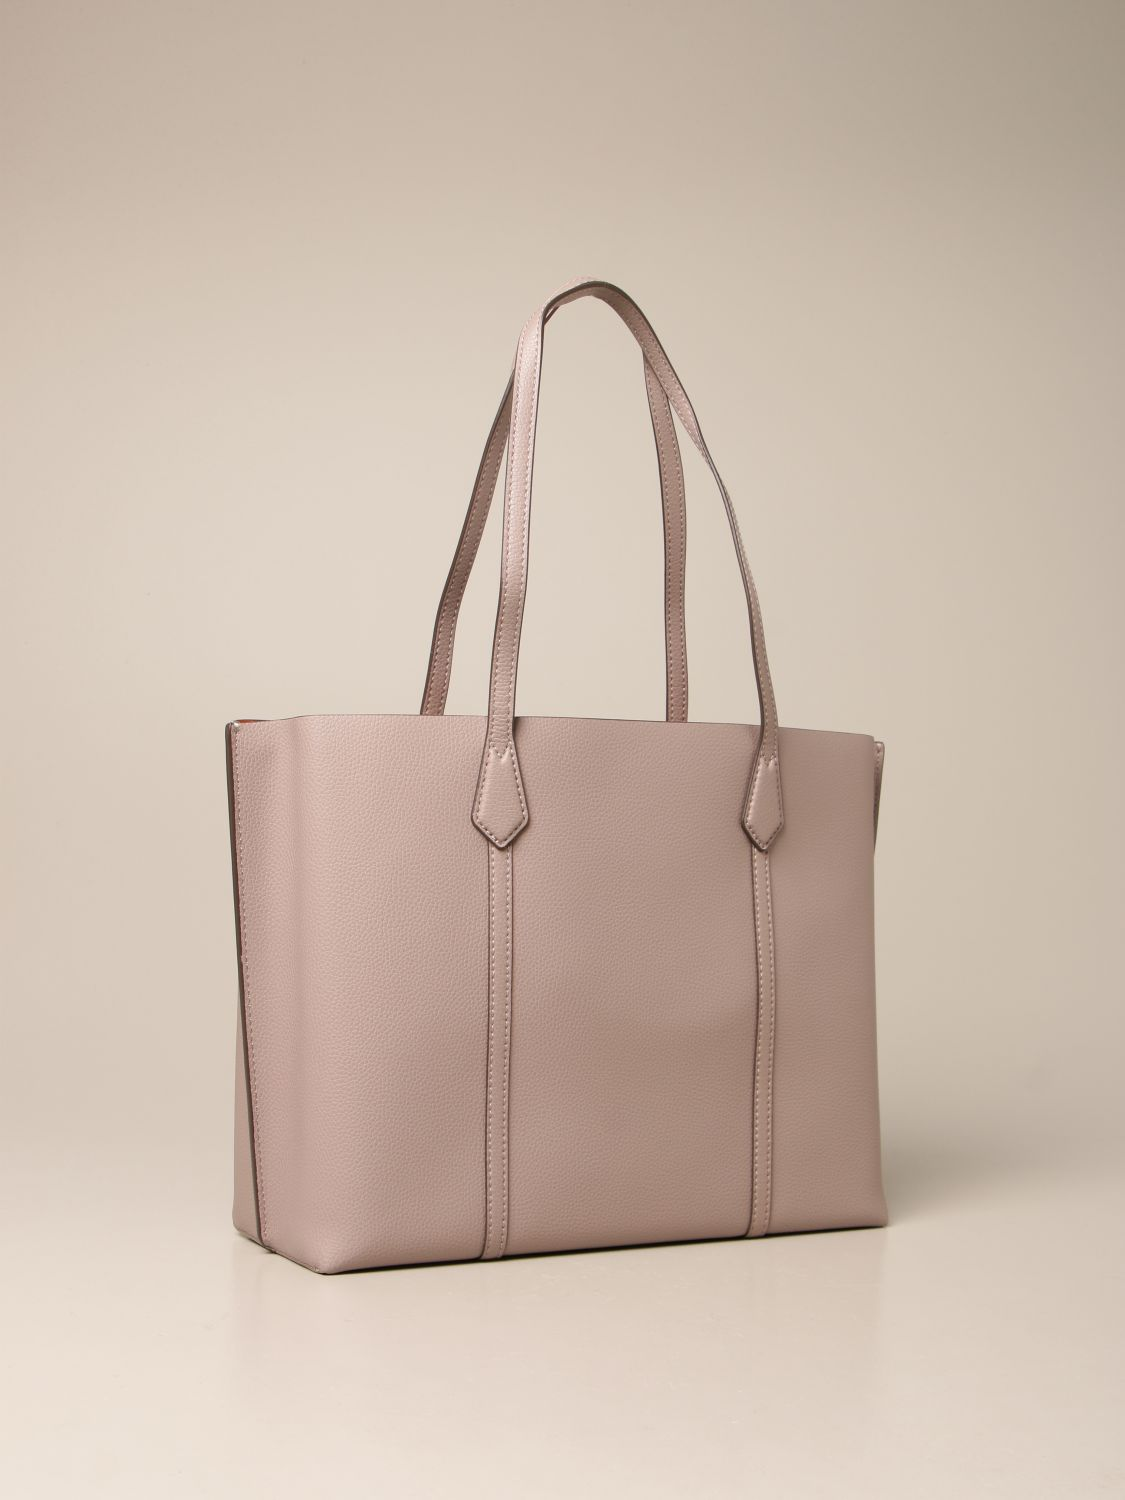 Handbag Tory Burch: Perry Tory Burch bag in textured leather grey 2